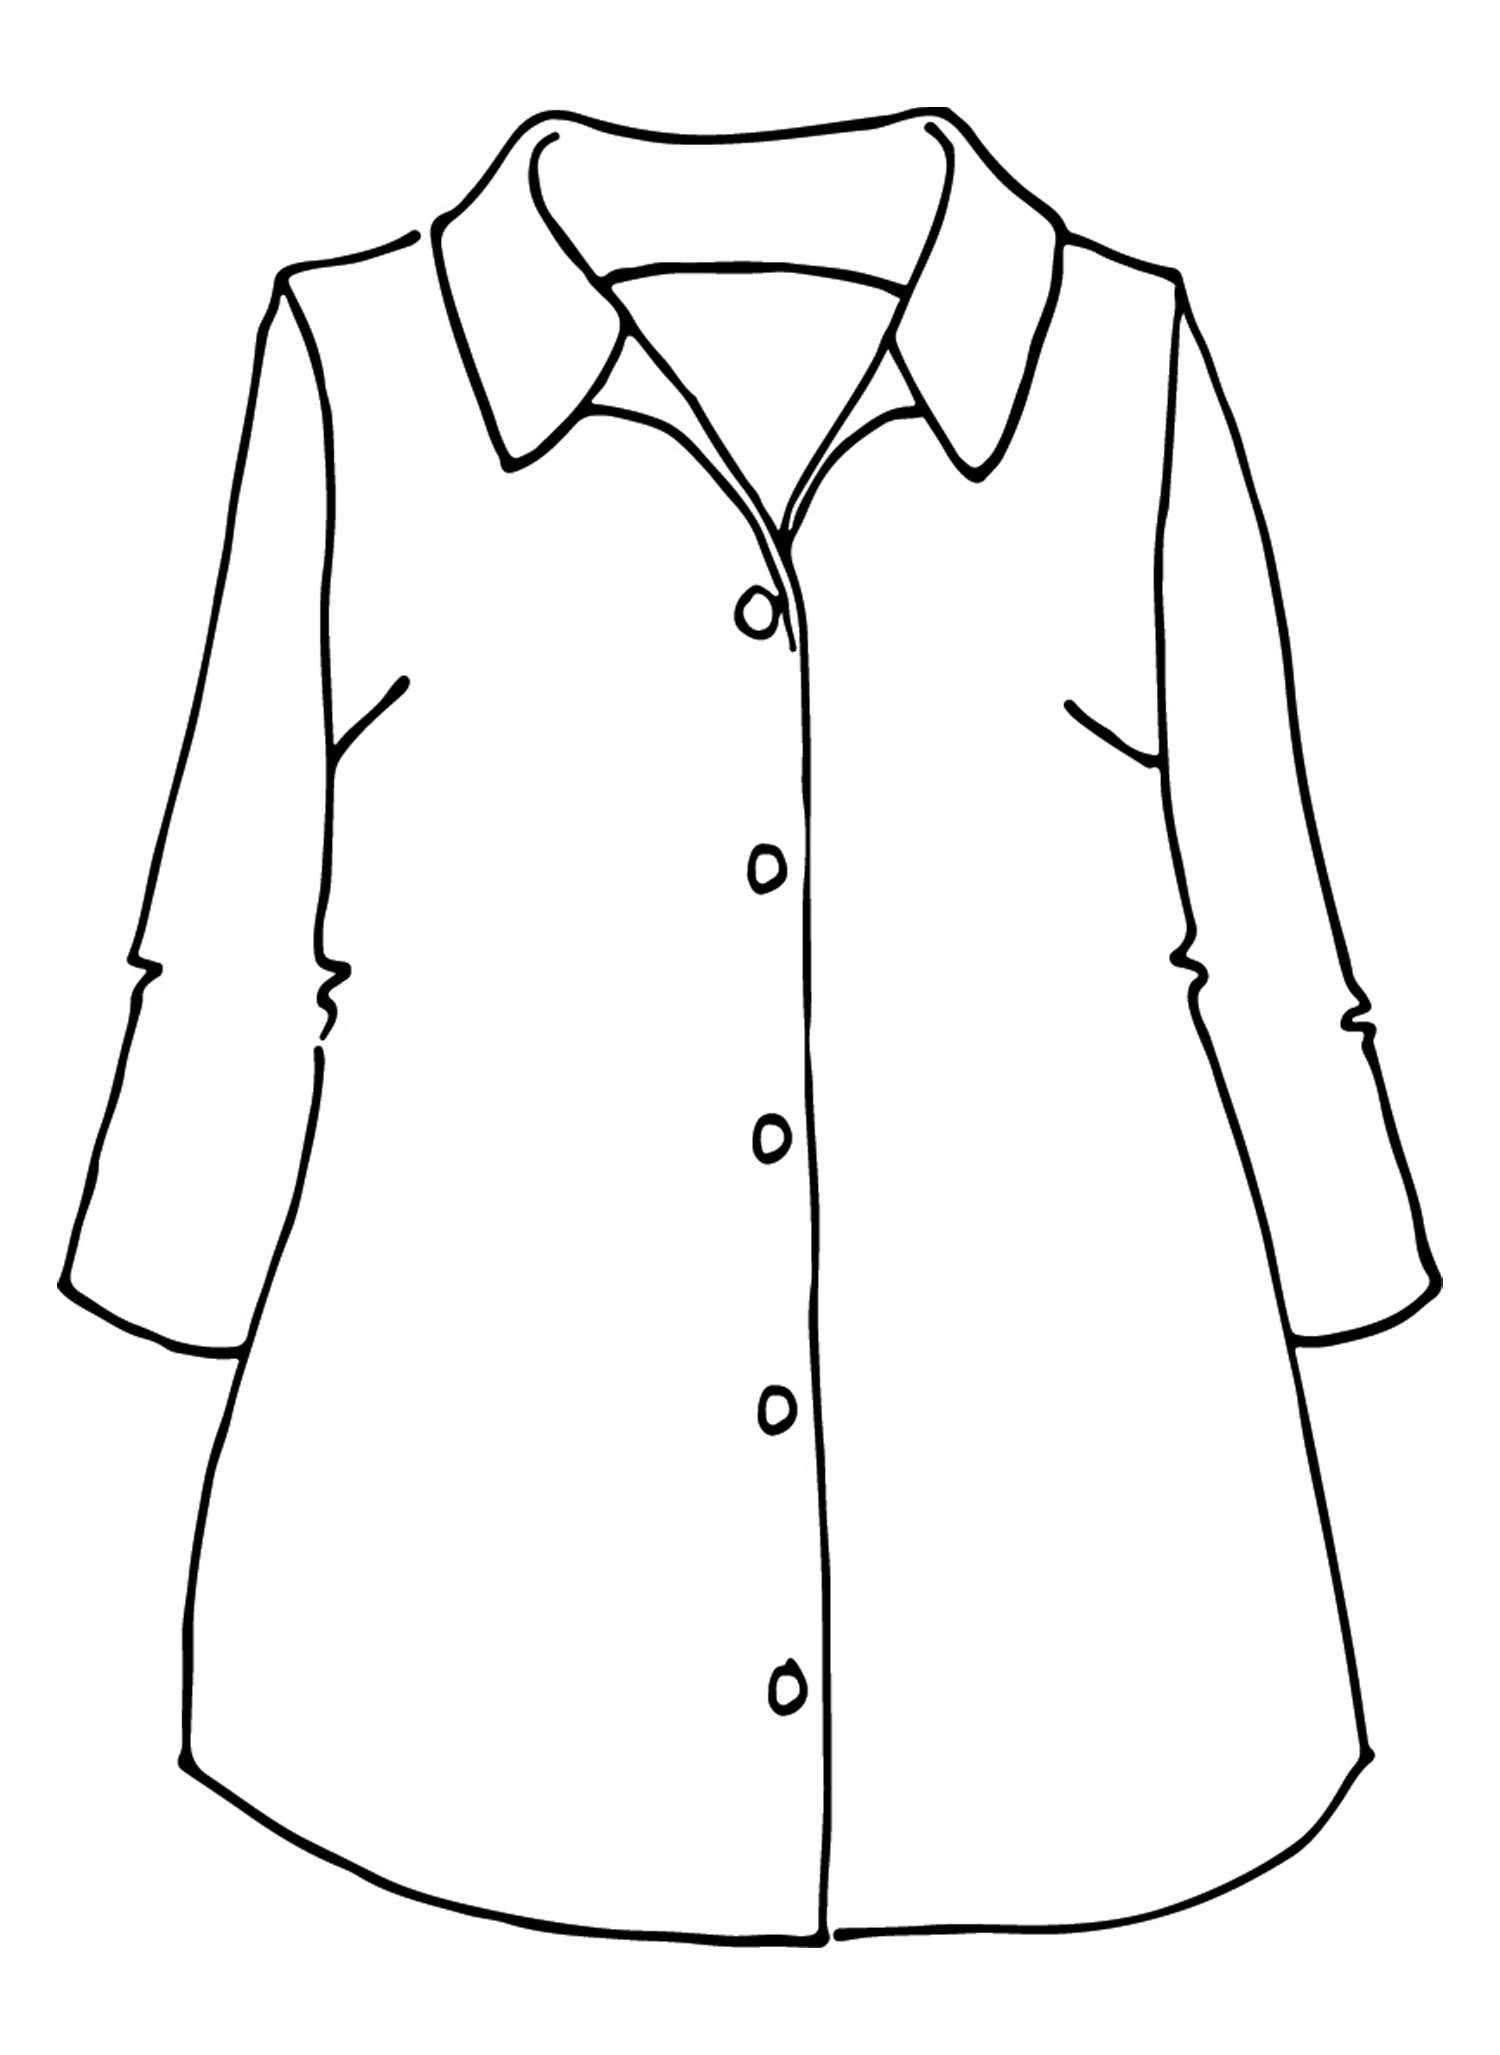 In-Line Blouse sketch image